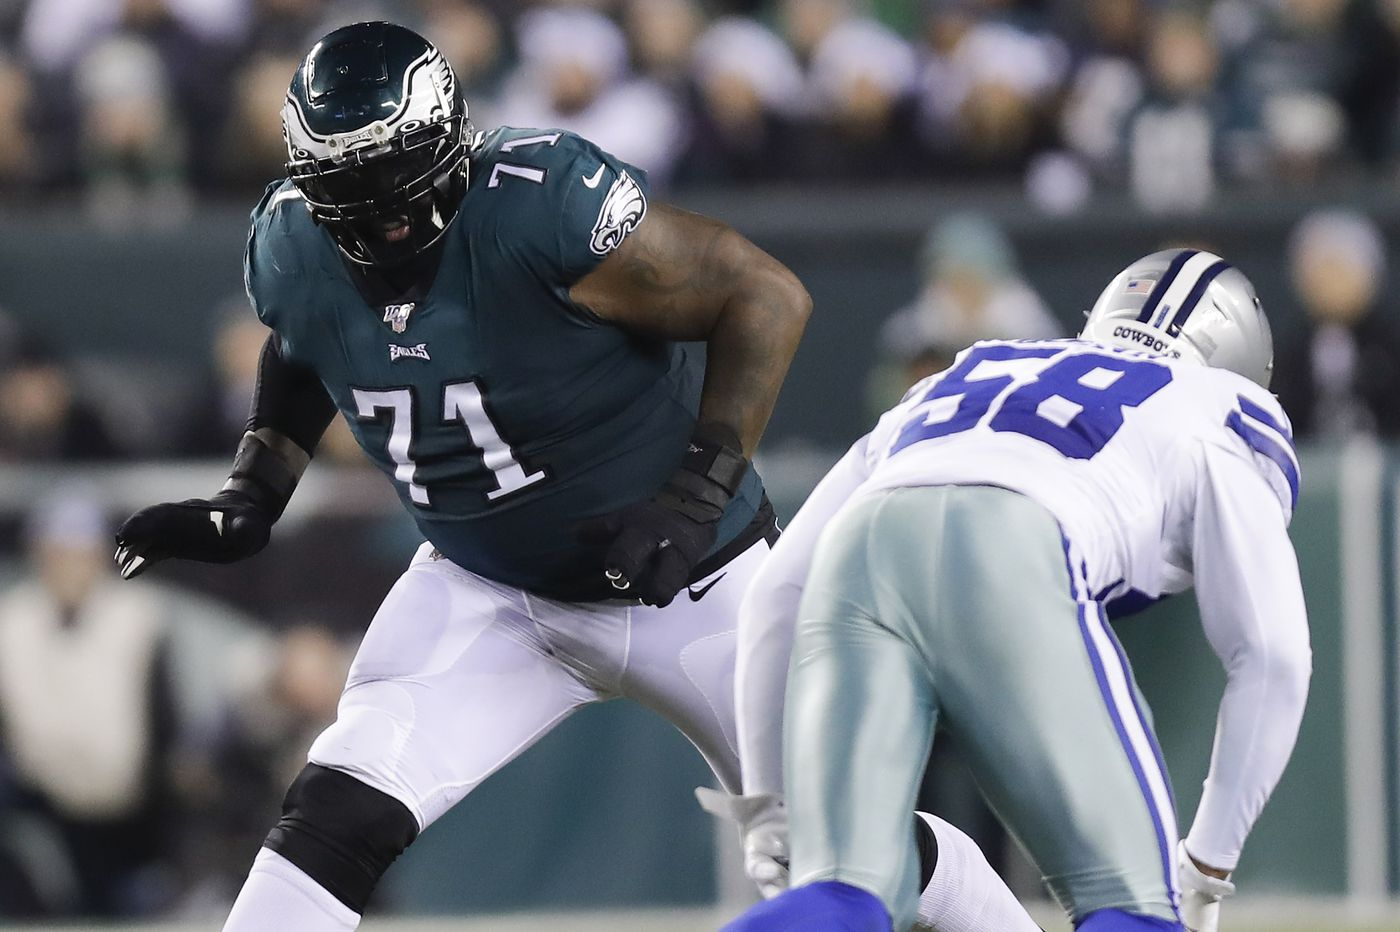 Between Jason Peters and Halapoulivaati Vaitai, Eagles have tenuous situation at tackle | Mike Sielski